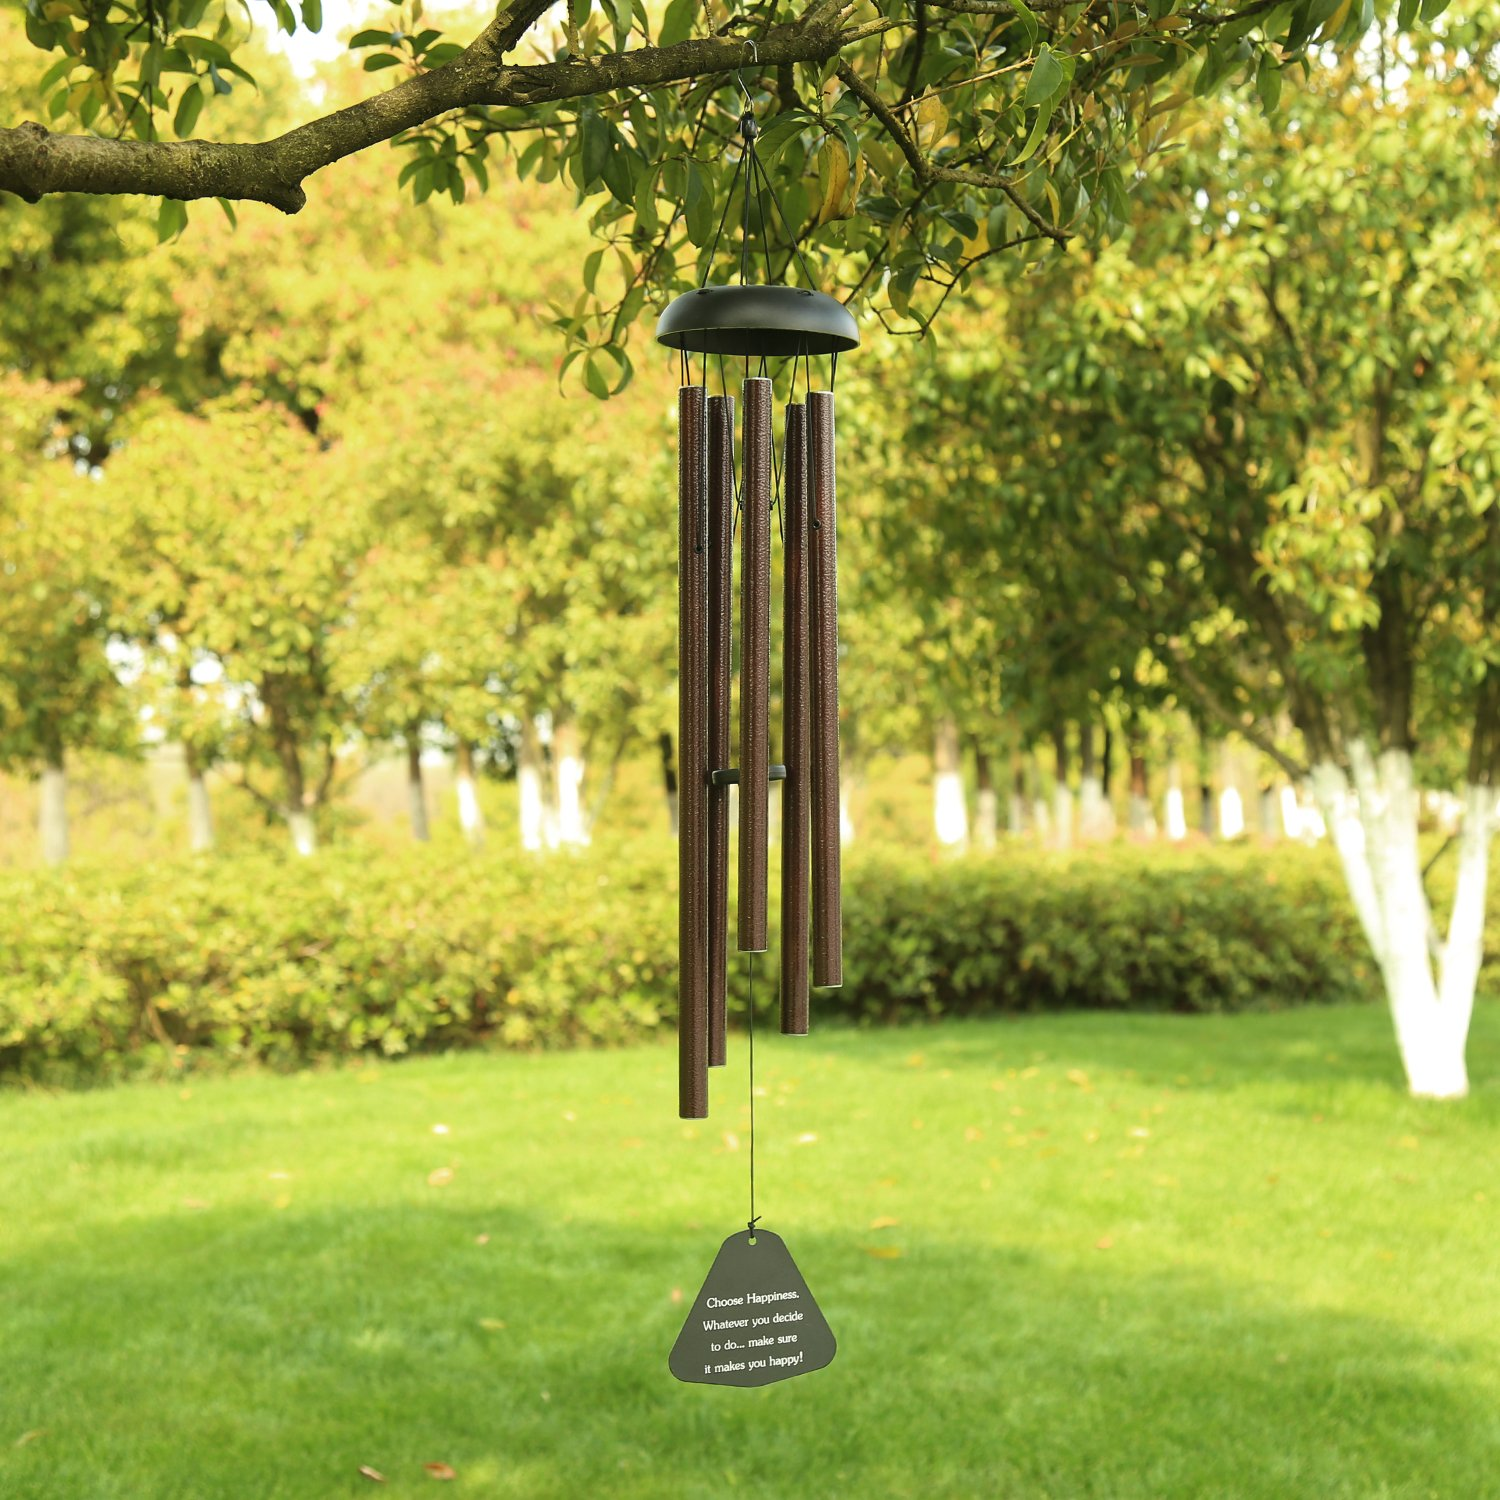 AUCHEN Large Wind Chimes Outdoor Deep Tone,36'' Sympathy Wind Chimes Amazing Grace Tuned Beautiful Melody,Memorial Wind chimes Personalized 5 Metal Tubes Garden Patio Home Housewarming Decor,Brozen